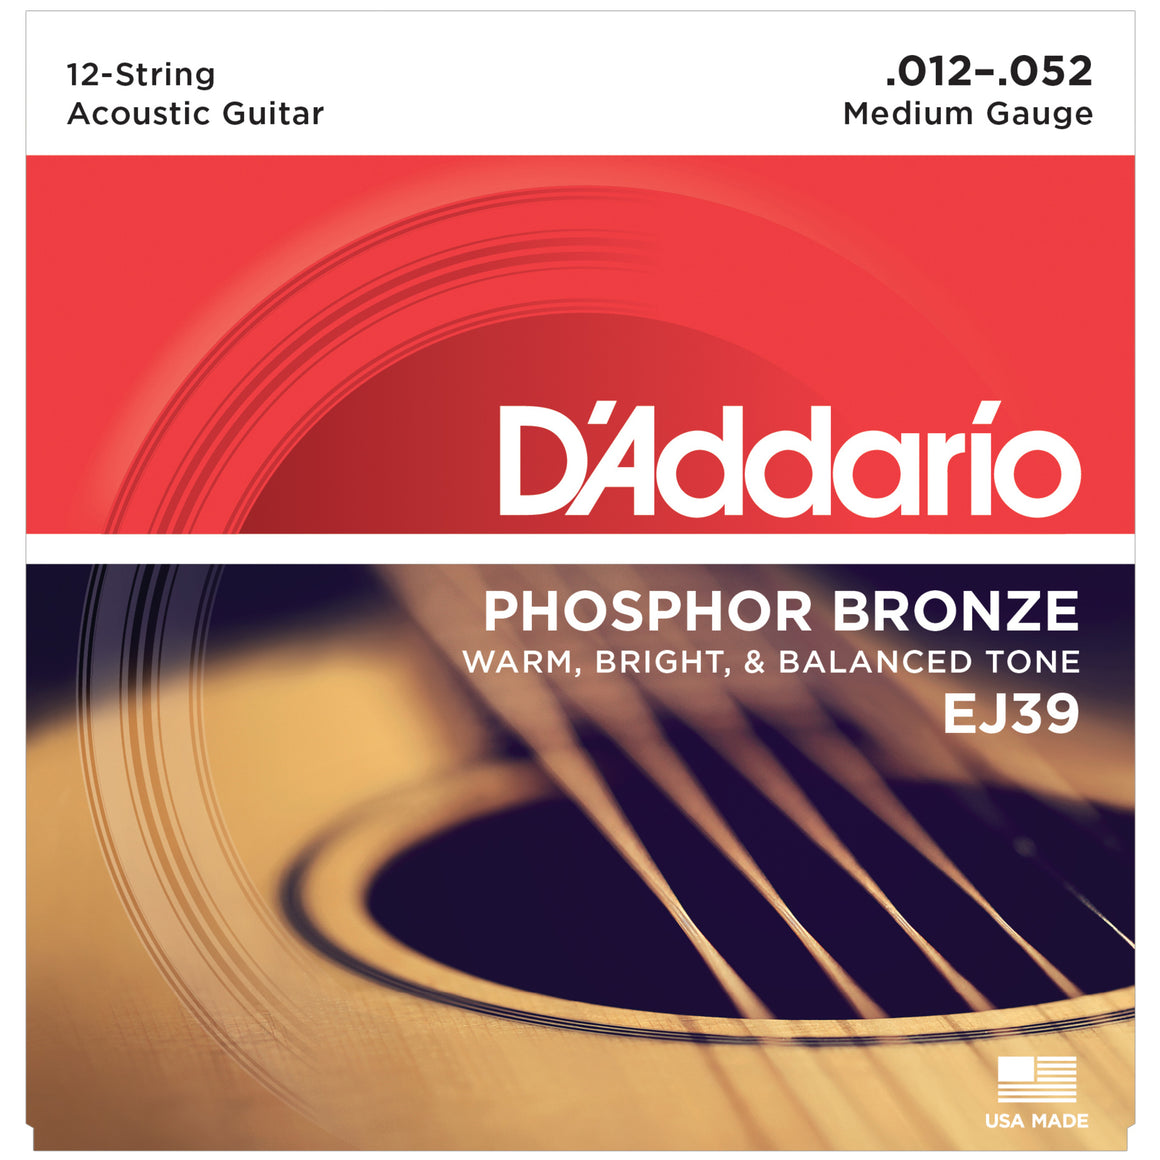 D'Addario EJ39 12-52 Phosphor Bronze Medium 12-String Acoustic Guitar Strings